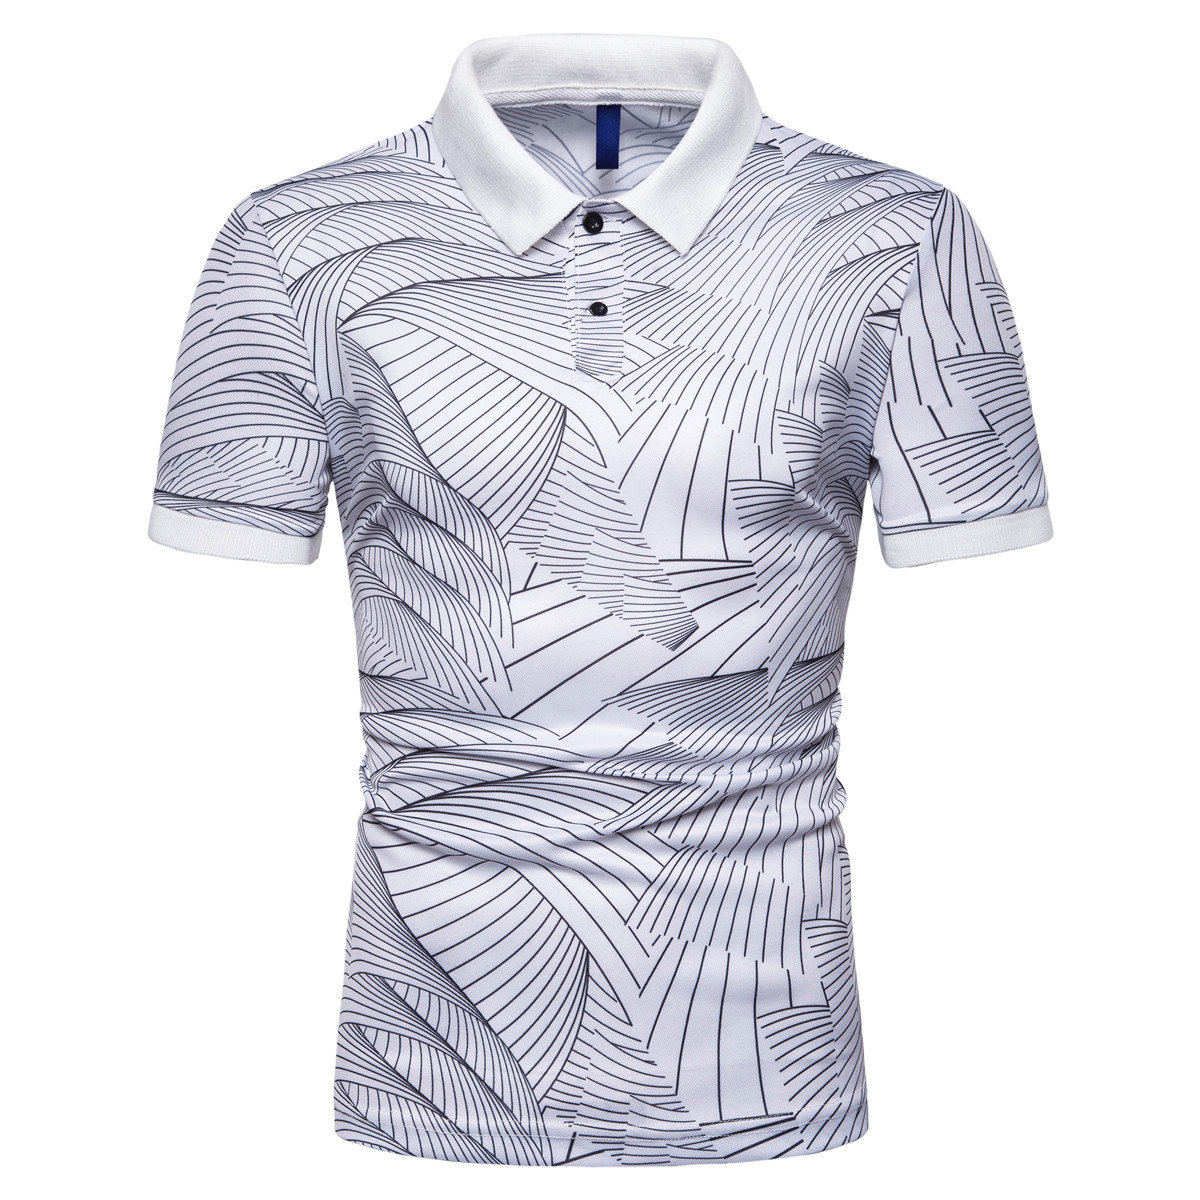 Miicoopie Mens Short Sleeve   Polo   Shirts Fashion Irregular Lines Print Casual Brand   Polo   Shirts